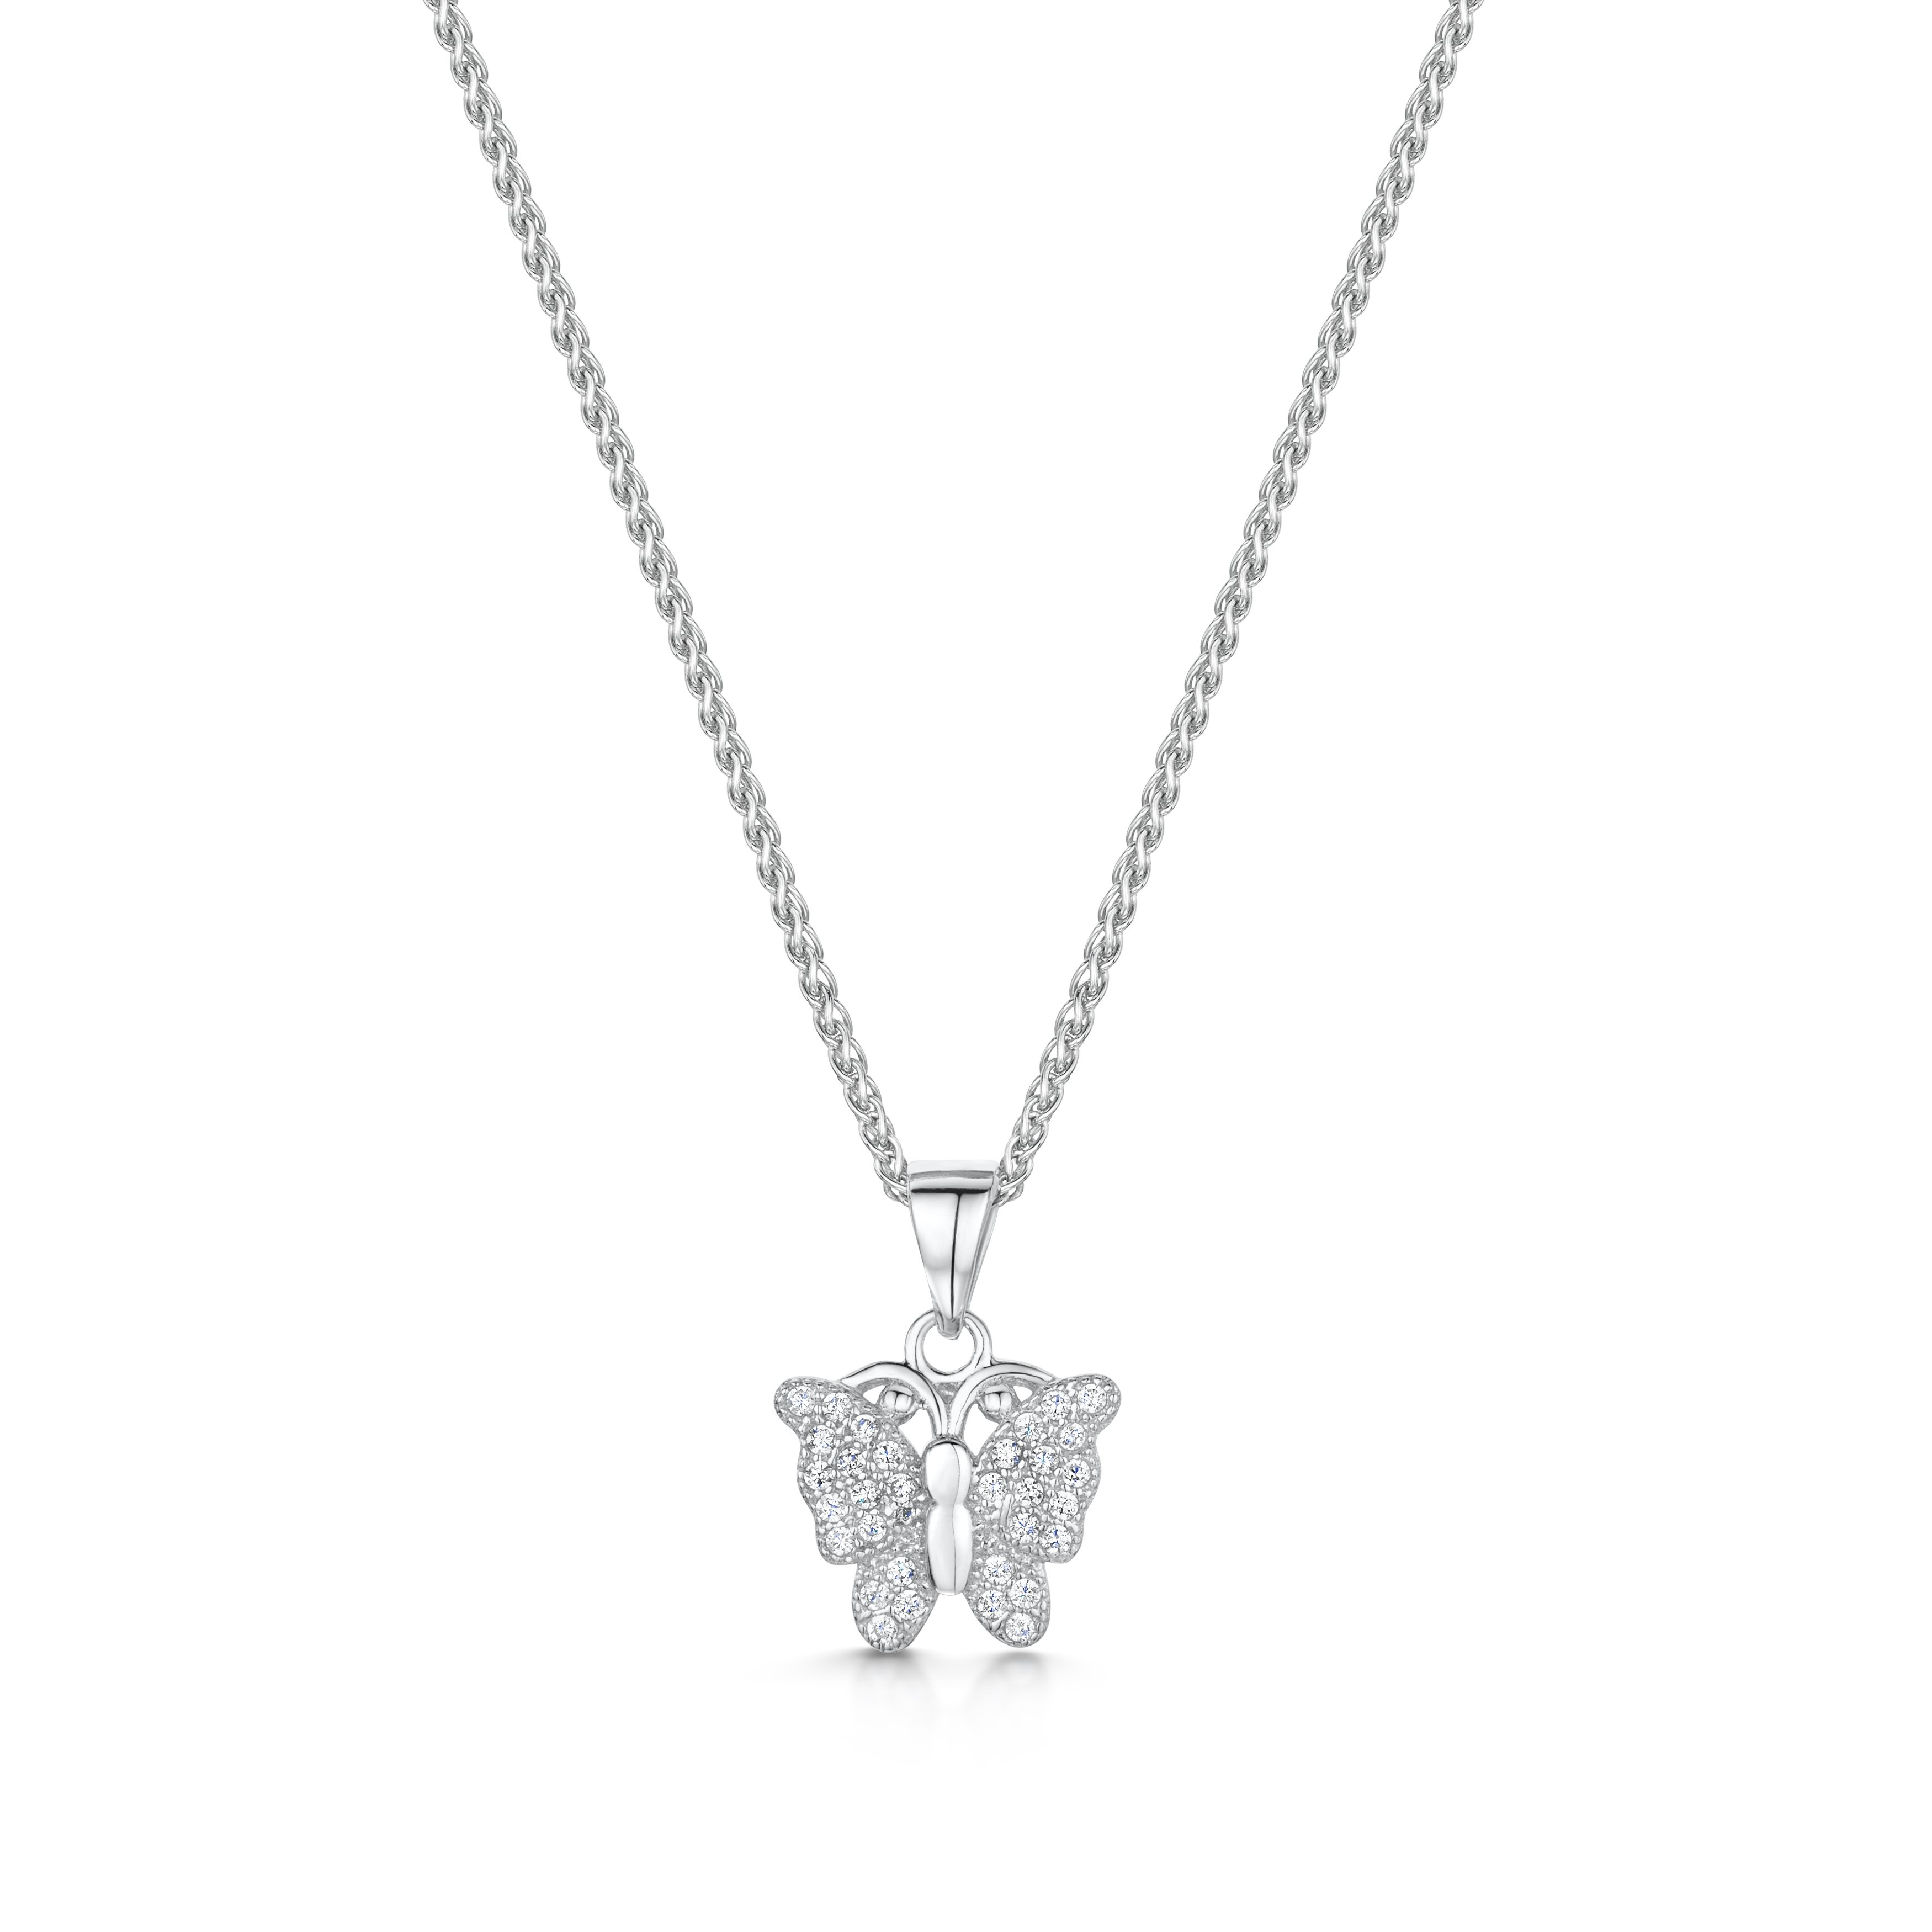 18 or 20 inch Rope Rembrandt Charms Sterling Silver 3D Knitting Charm on a 16 Box or Curb Chain Necklace